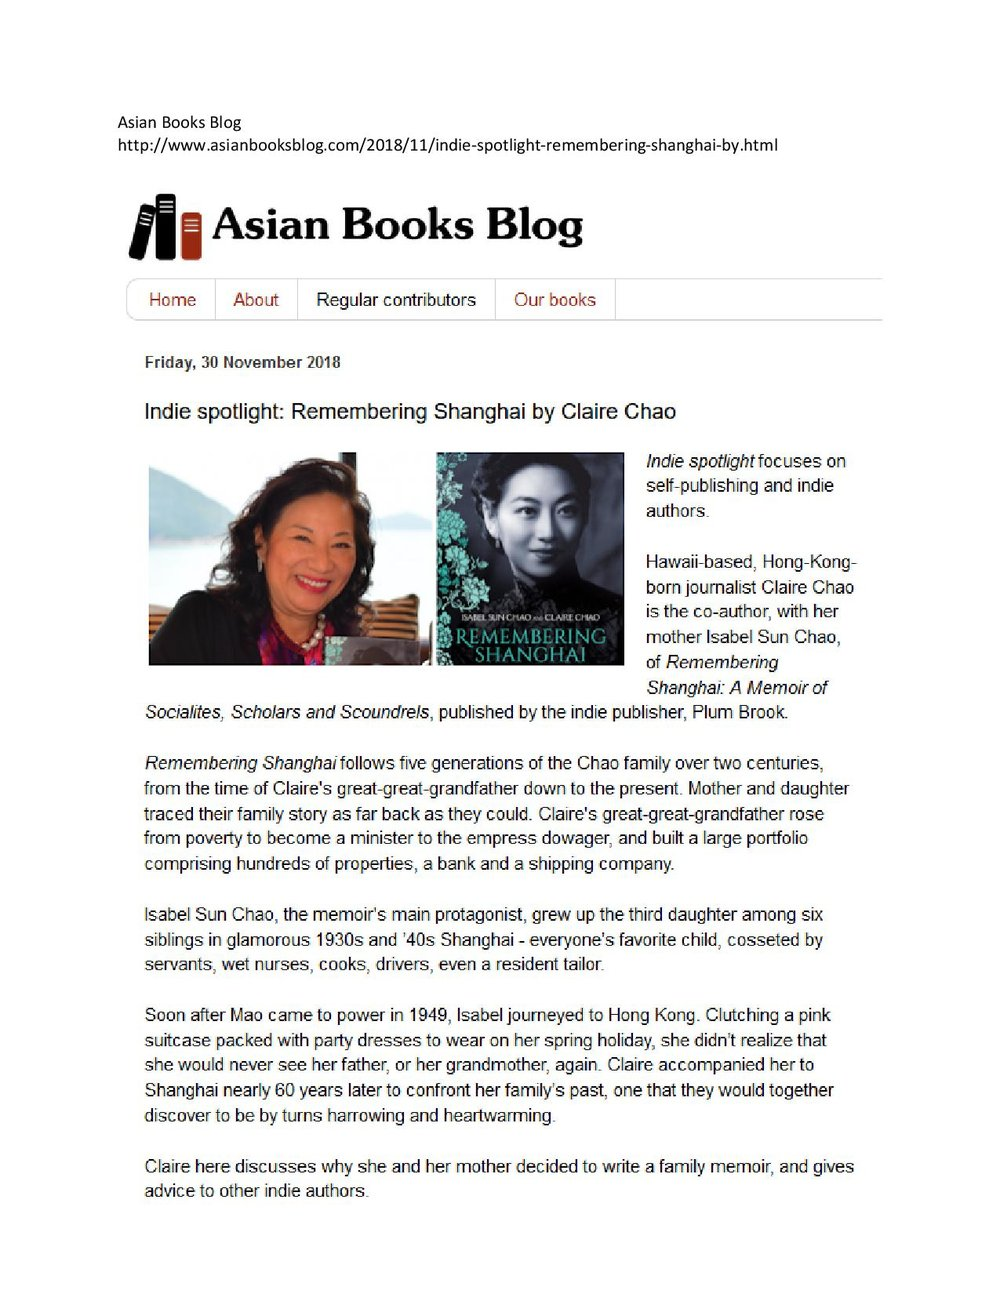 Asian Books Blog, November 2019